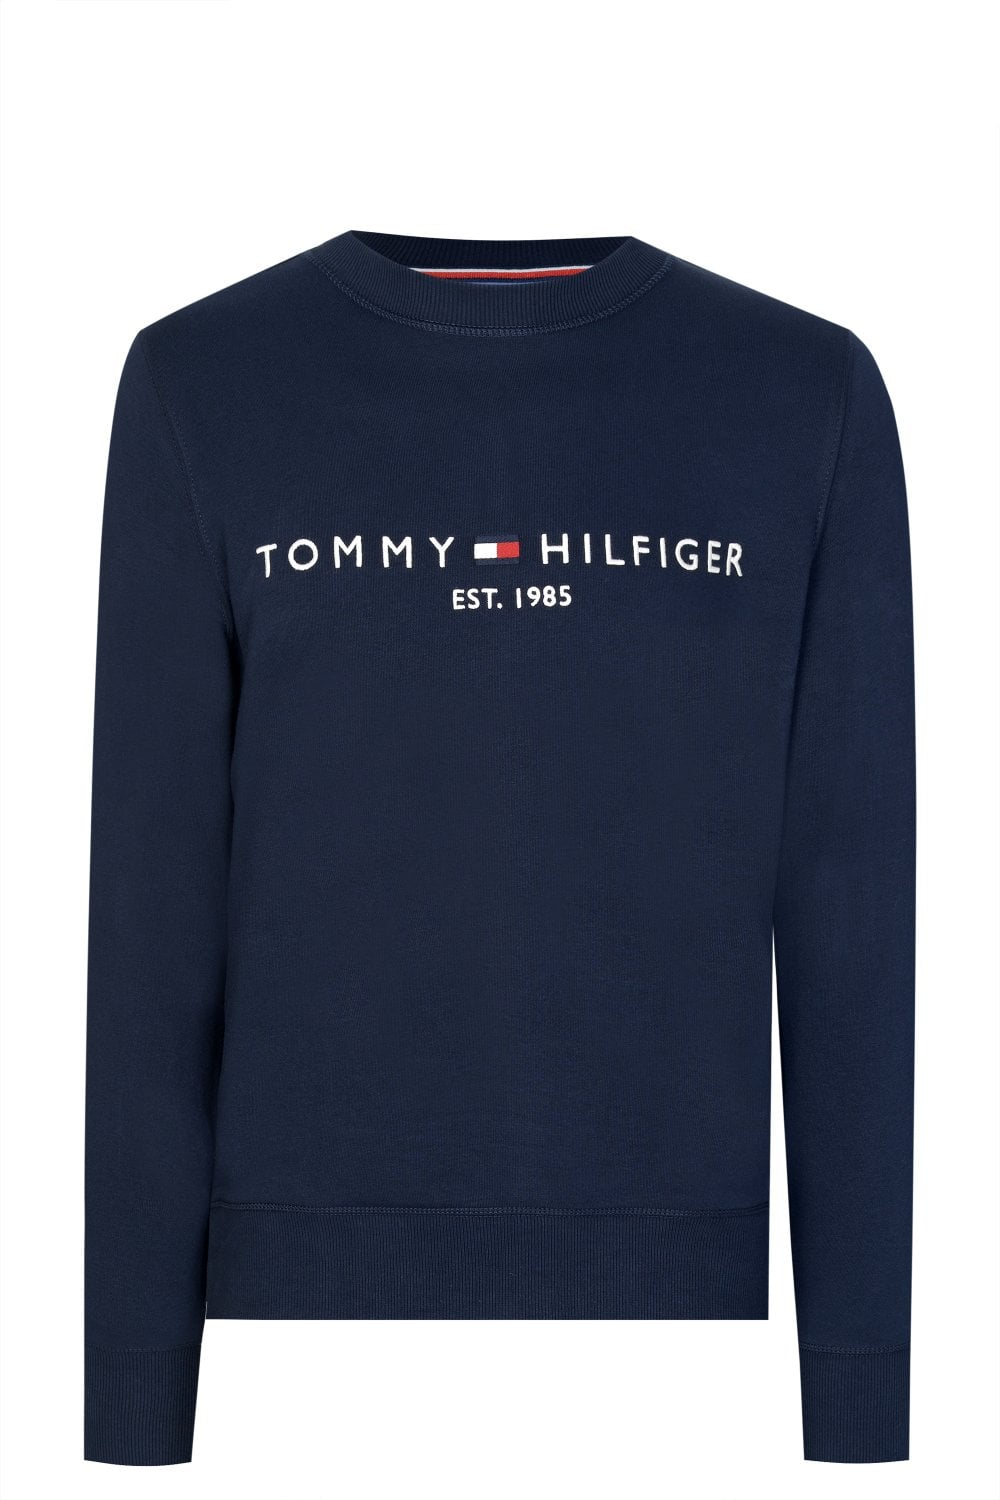 06d7e9a8 TOMMY HILFIGER Tommy Hilfiger Logo Sweatshirt - Clothing from Circle ...